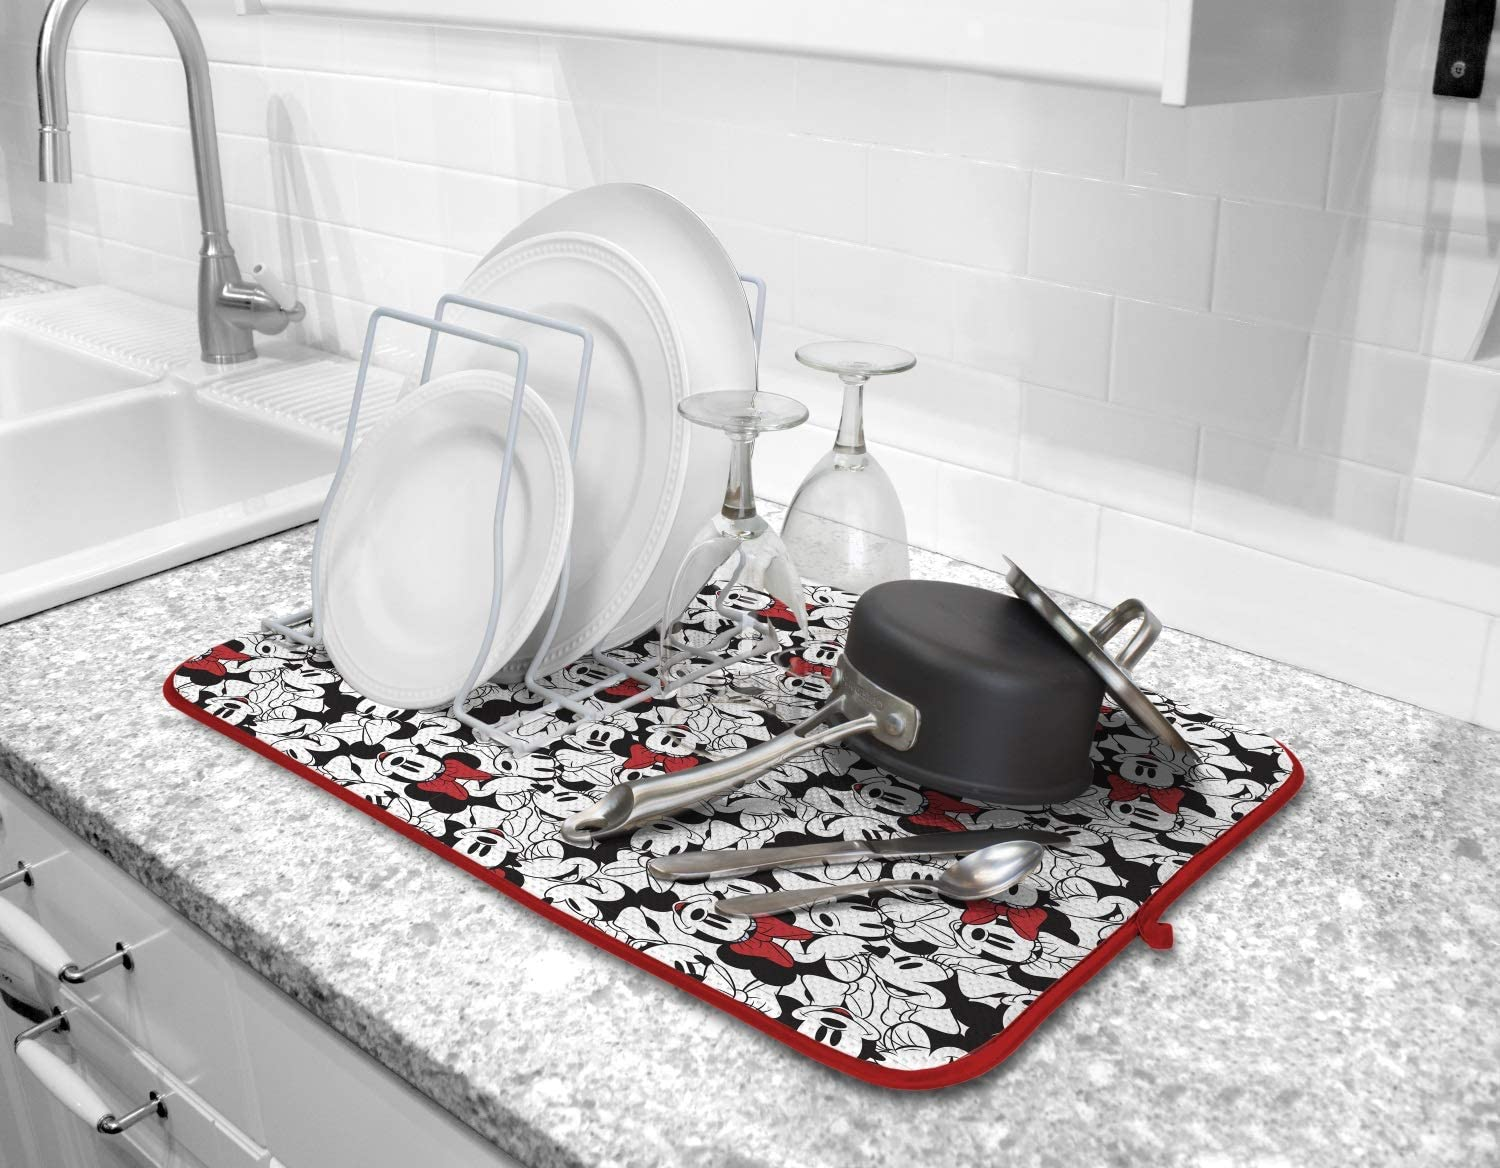 Disney Kitchen Dish Drying Mat - Ultra Absorbent Reversible Microfiber Drying Mat - Soft Surface for Air Drying Dinnerware, Delicate Crystal and Stemware, Pots, Pans, 16 x 18 inches, Minnie Face